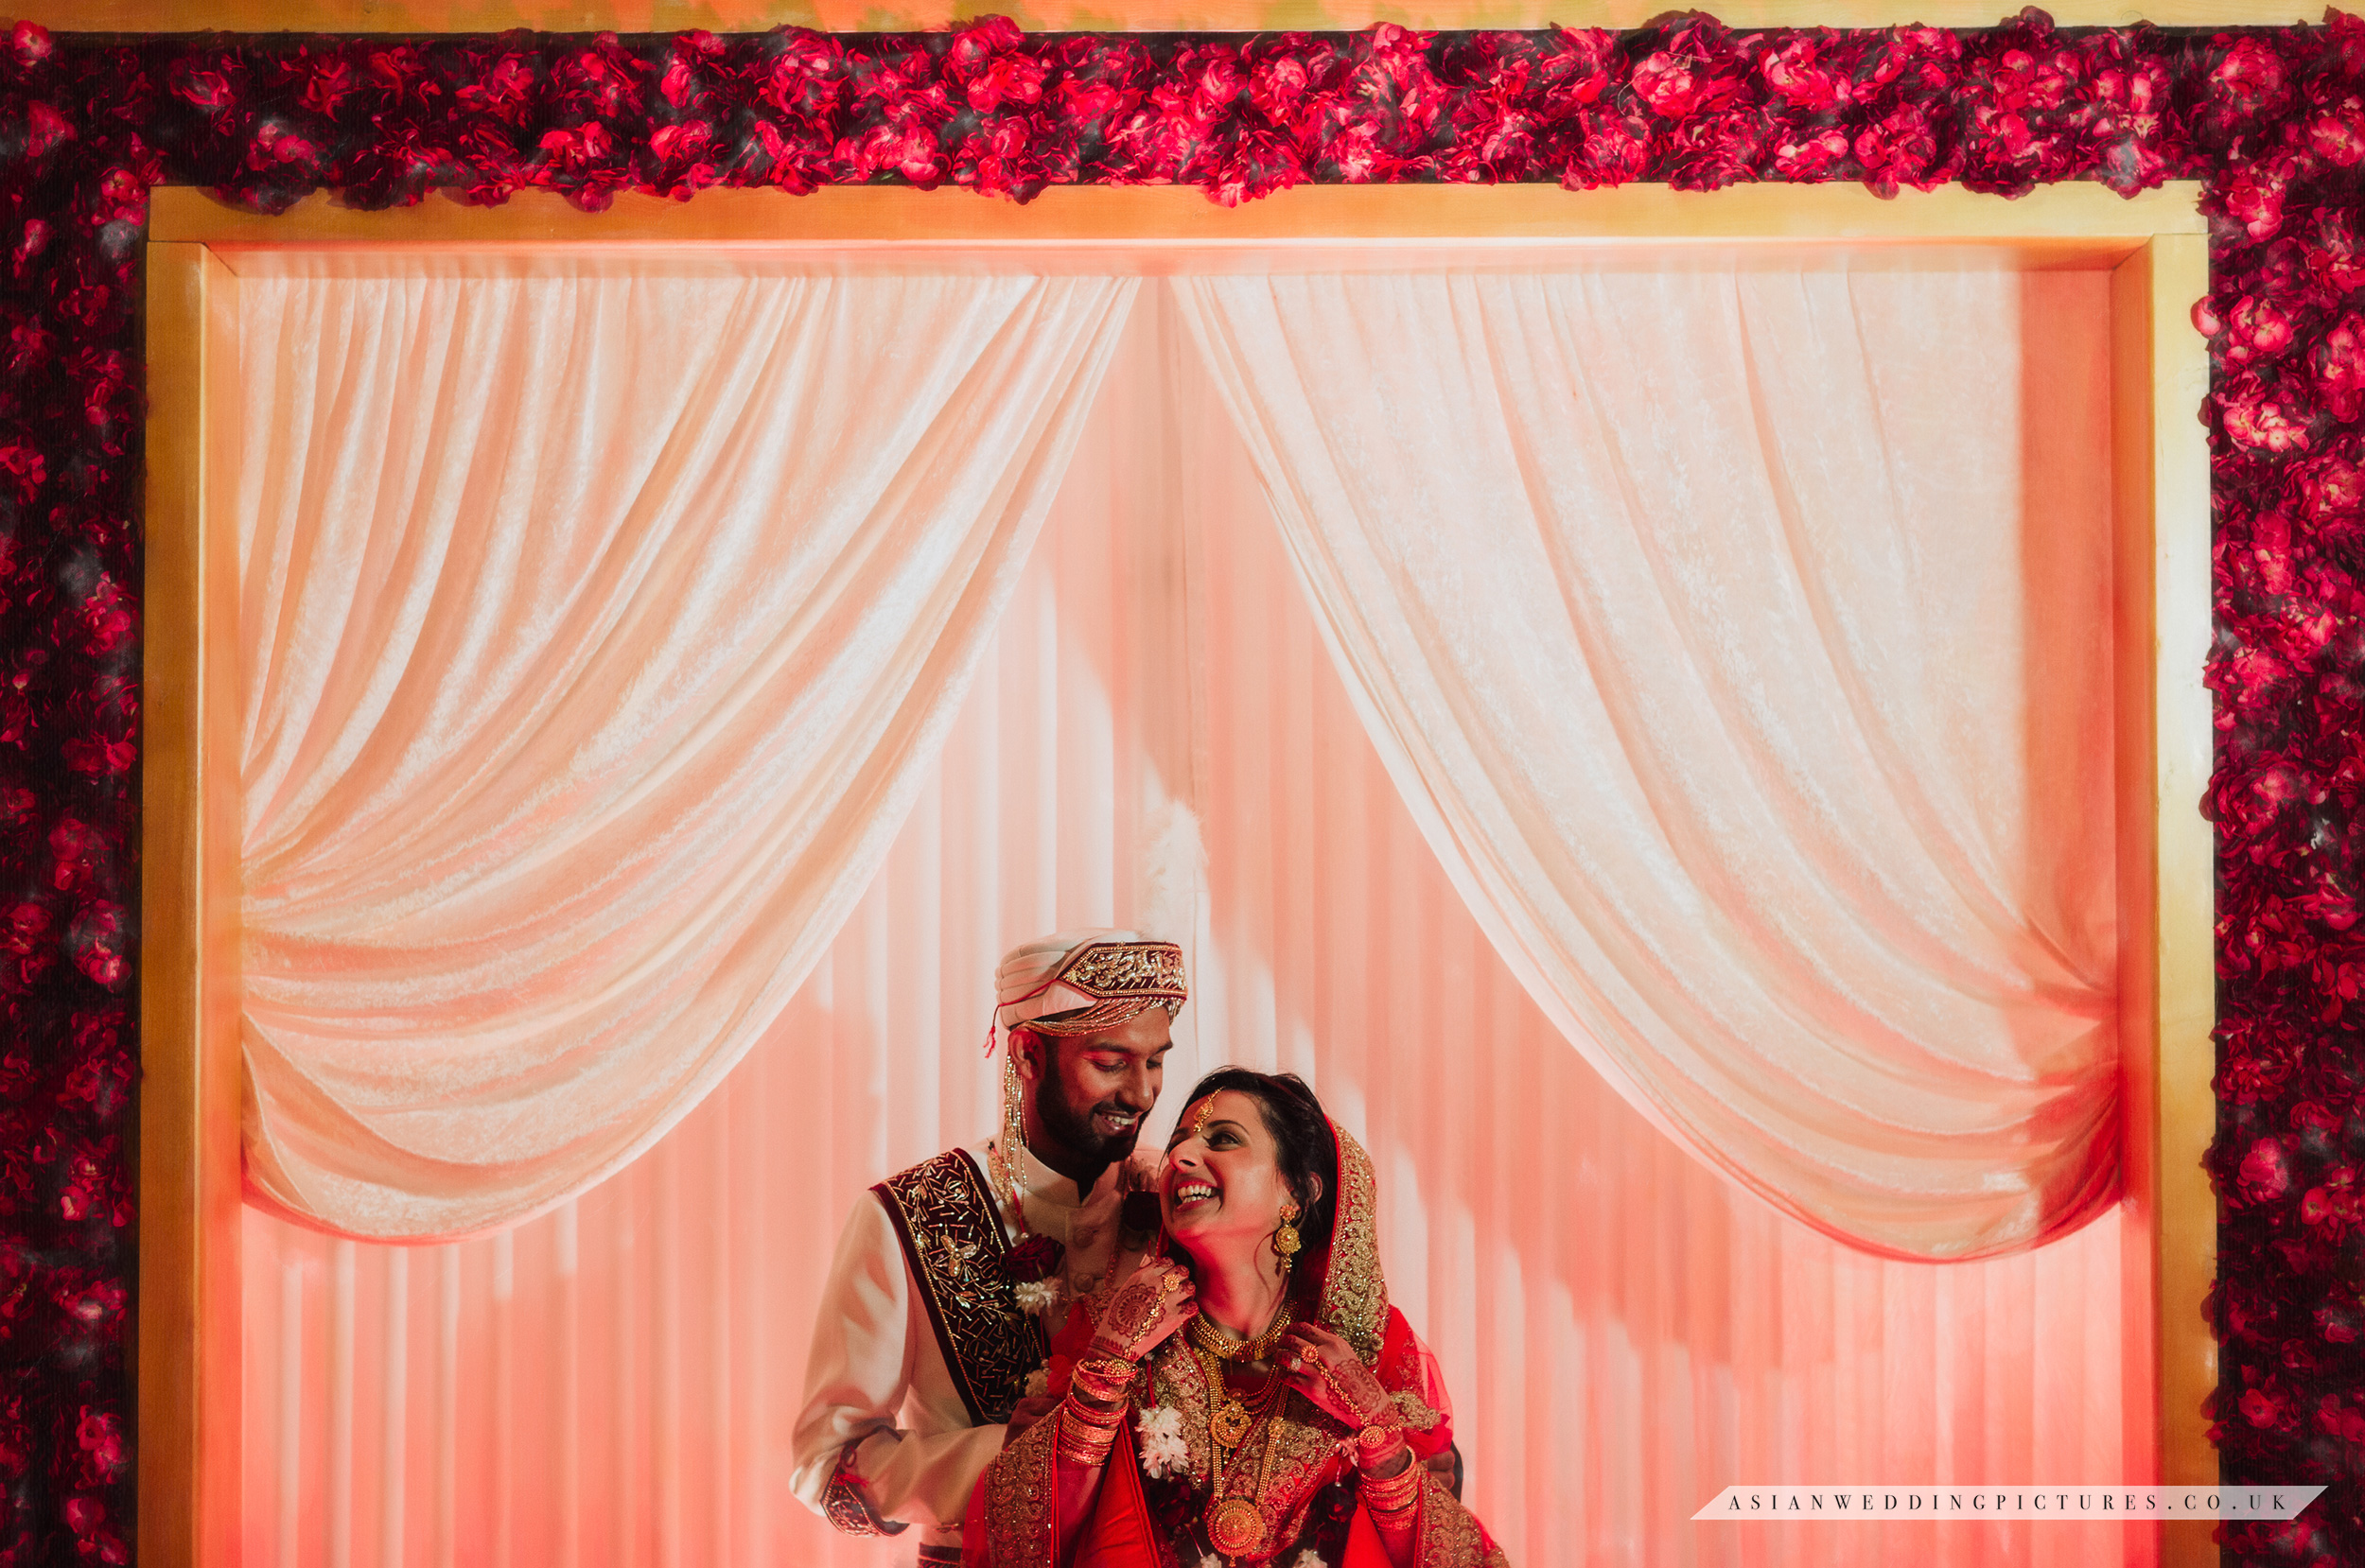 asian-wedding-pictures-11-2.jpg